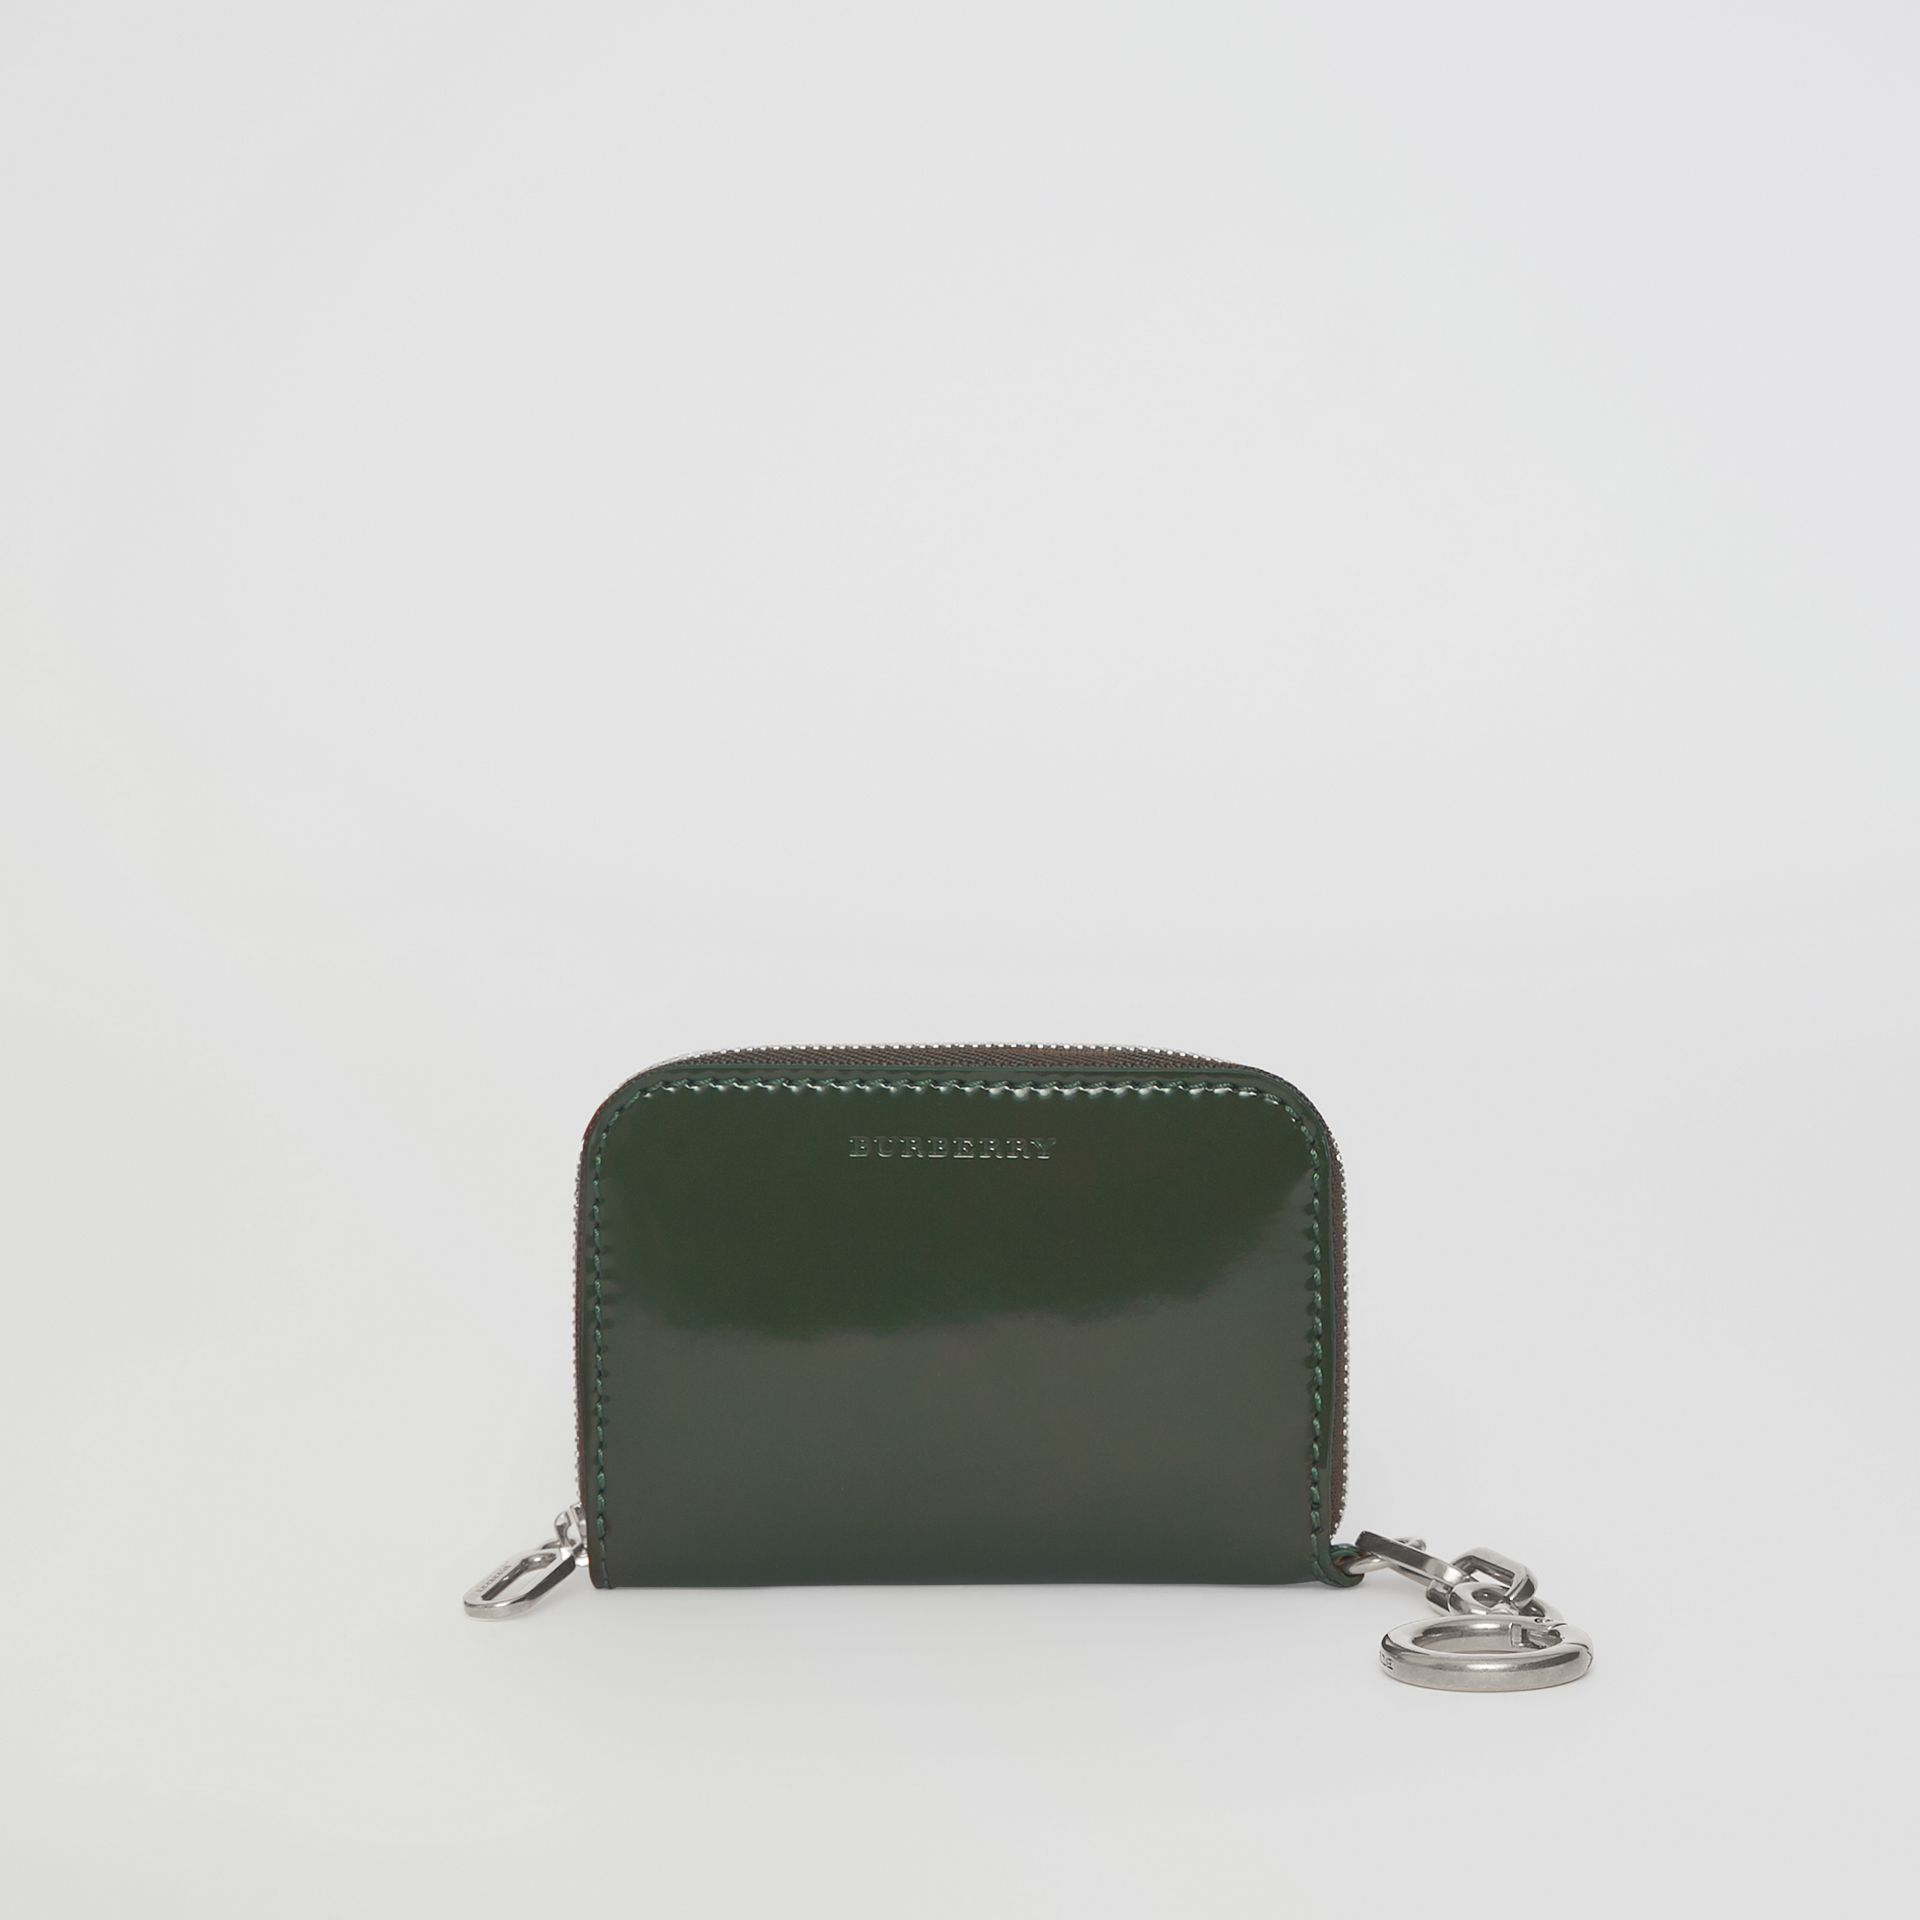 Link Detail Patent Leather Ziparound Wallet in Dark Forest Green - Women | Burberry United Kingdom - gallery image 2